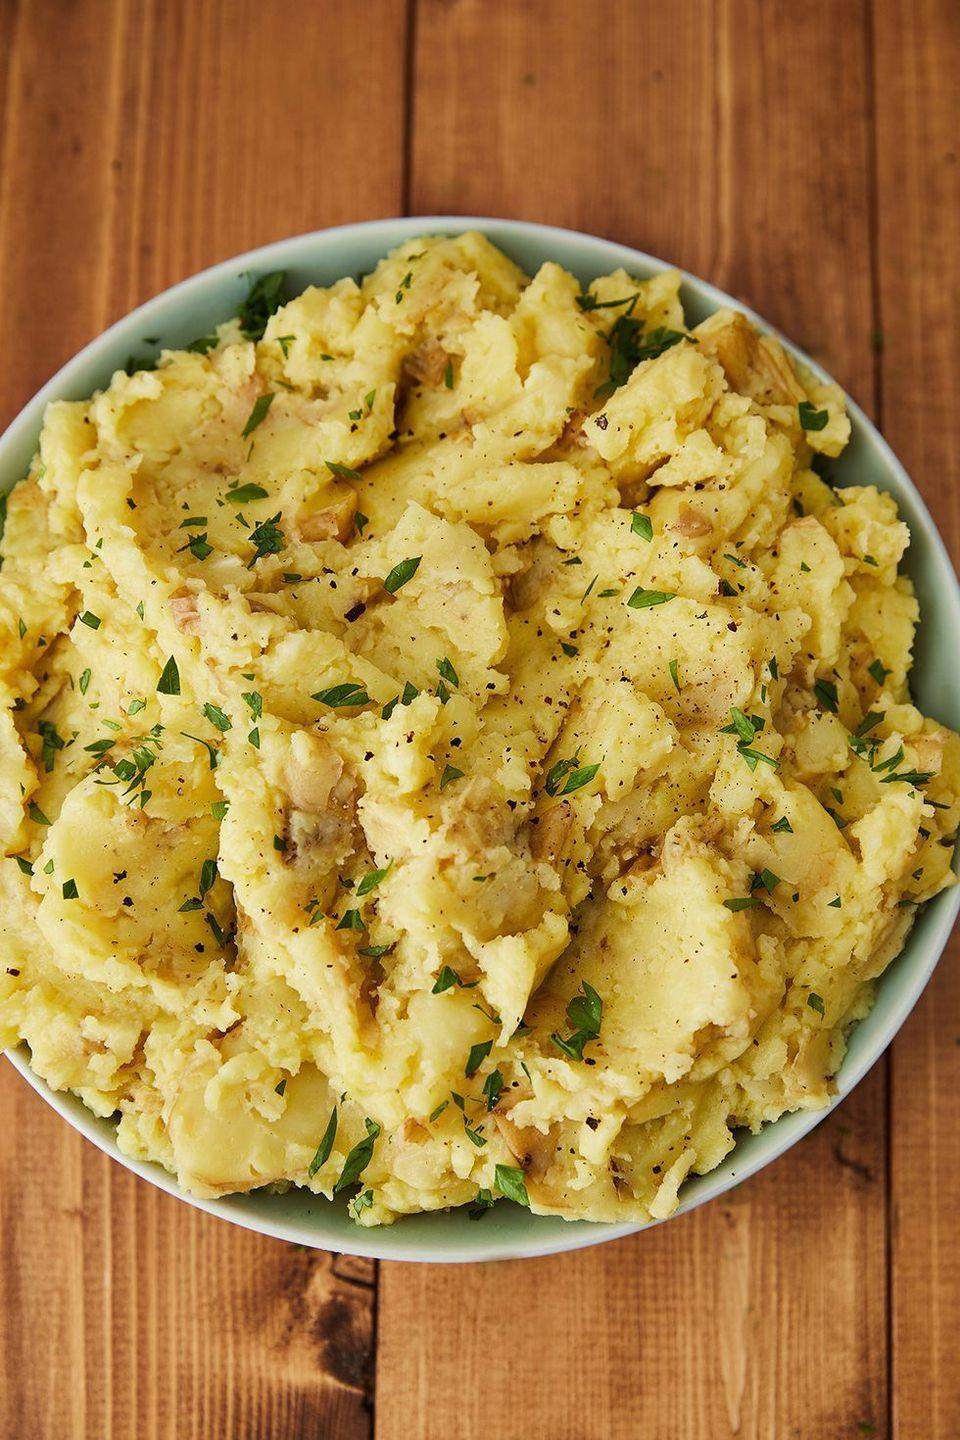 "<p>Vegan butter is your friend. </p><p>Get the recipe from <a href=""https://www.delish.com/holiday-recipes/thanksgiving/a22657761/best-vegan-mashed-potatoes-recipe/"" rel=""nofollow noopener"" target=""_blank"" data-ylk=""slk:Delish"" class=""link rapid-noclick-resp"">Delish</a>.</p>"